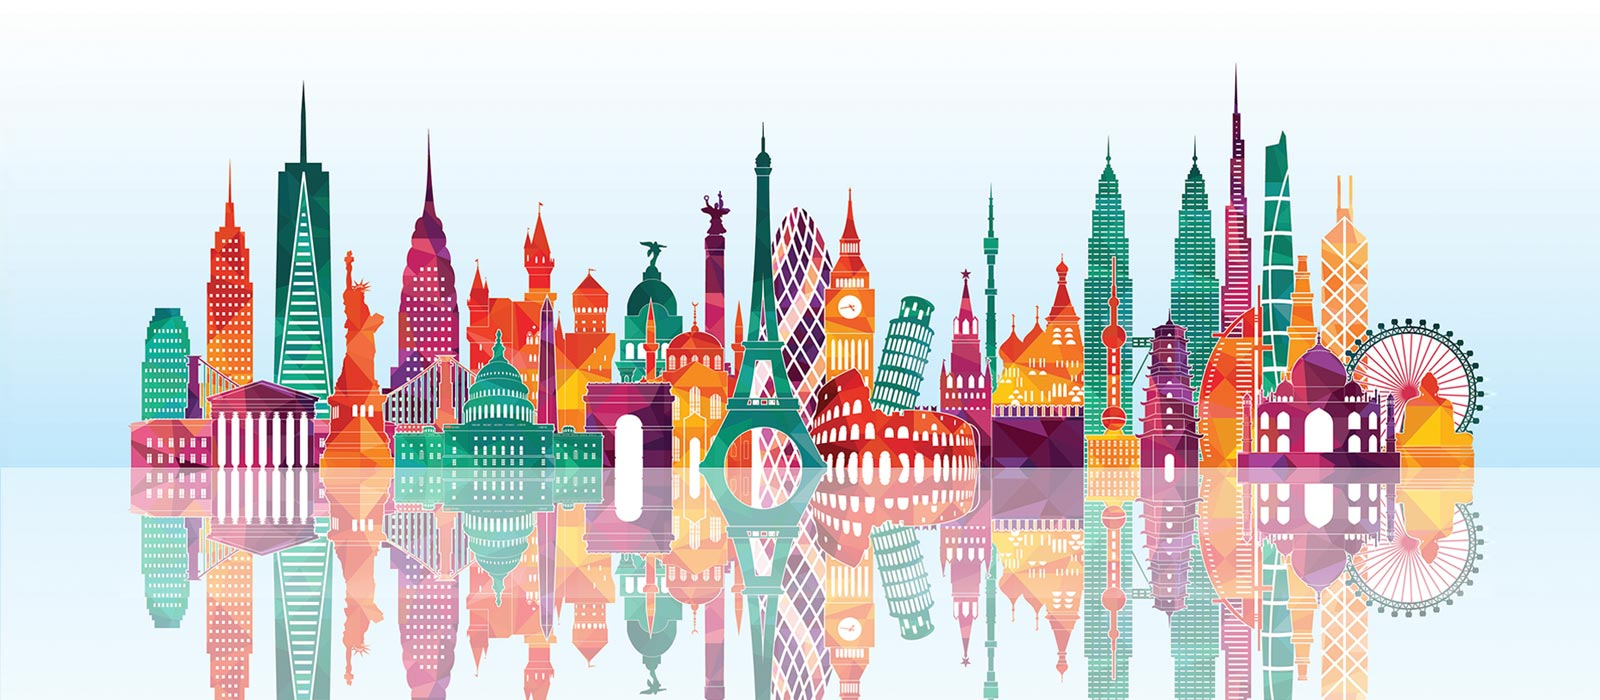 Illustration of world landmarks as one colorful big city